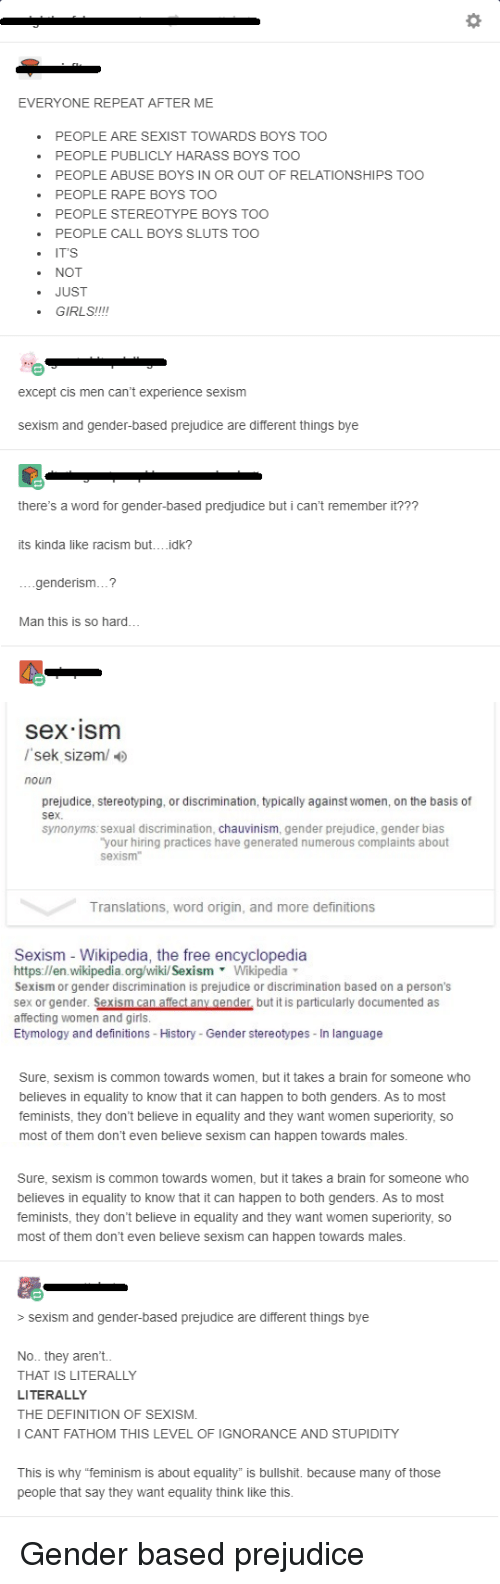 """Feminism, Girls, and Racism: EVERYONE REPEAT AFTER ME  PEOPLE ARE SEXIST TOWARDS BOYS TOO  PEOPLE PUBLICLY HARASS BOYS TOO  PEOPLE ABUSE BOYS IN OR OUT OF RELATIONSHIPS TOO  PEOPLE RAPE BOYS TOO  PEOPLE STEREOTYPE BOYS TOO  PEOPLE CALL BOYS SLUTS TOO  IT'S  NOT  . JUST  GIRLS!!!!  except cis men can't experience sexism  sexism and gender-based prejudice are different things bye  there's a word for gender-based predjudice but i can't remember it???  its kinda like racism but....idk?  ....genderism...?  Man this is so hard...  sex ism  /sek sizem/  noun  prejudice, stereotyping, or discrimination, typically against women, on the basis of  sex.  synonyms:sexual discrimination, chauvinism, gender prejudice, gender bias  your hiring practices have generated numerous complaints about  sexism  Translations, word origin, and more definitions  Sexism - Wikipedia, the free encyclopedia  https://en wikipedia.org/wikil Sexism Wikipedia  Sexism or gender discrimination is prejudice or discrimination based on a person's  sex or gender. Sexism can affect any genderbut it is particularly documented as  affecting women and girls  Etymology and definitions - History - Gender stereotypes- In language  Sure, sexism is common towards women, but it takes a brain for someone who  believes in equality to know that it can happen to both genders. As to most  feminists, they don't believe in equality and they want women superiority, so  most of them don't even believe sexism can happen towards males  Sure, sexism is common towards women, but it takes a brain for someone who  believes in equality to know that it can happen to both genders. As to most  feminists, they don't believe in equality and they want women superiority, so  most of them don't even believe sexism can happen towards males  > sexism and gender-based prejudice are different things bye  No.. they aren't.  THAT IS LITERALLY  LITERALLY  THE DEFINITION OF SEXISM  I CANT FATHOM THIS LEVEL OF IGNORANCE AND STUPIDITY  This is why """"f"""